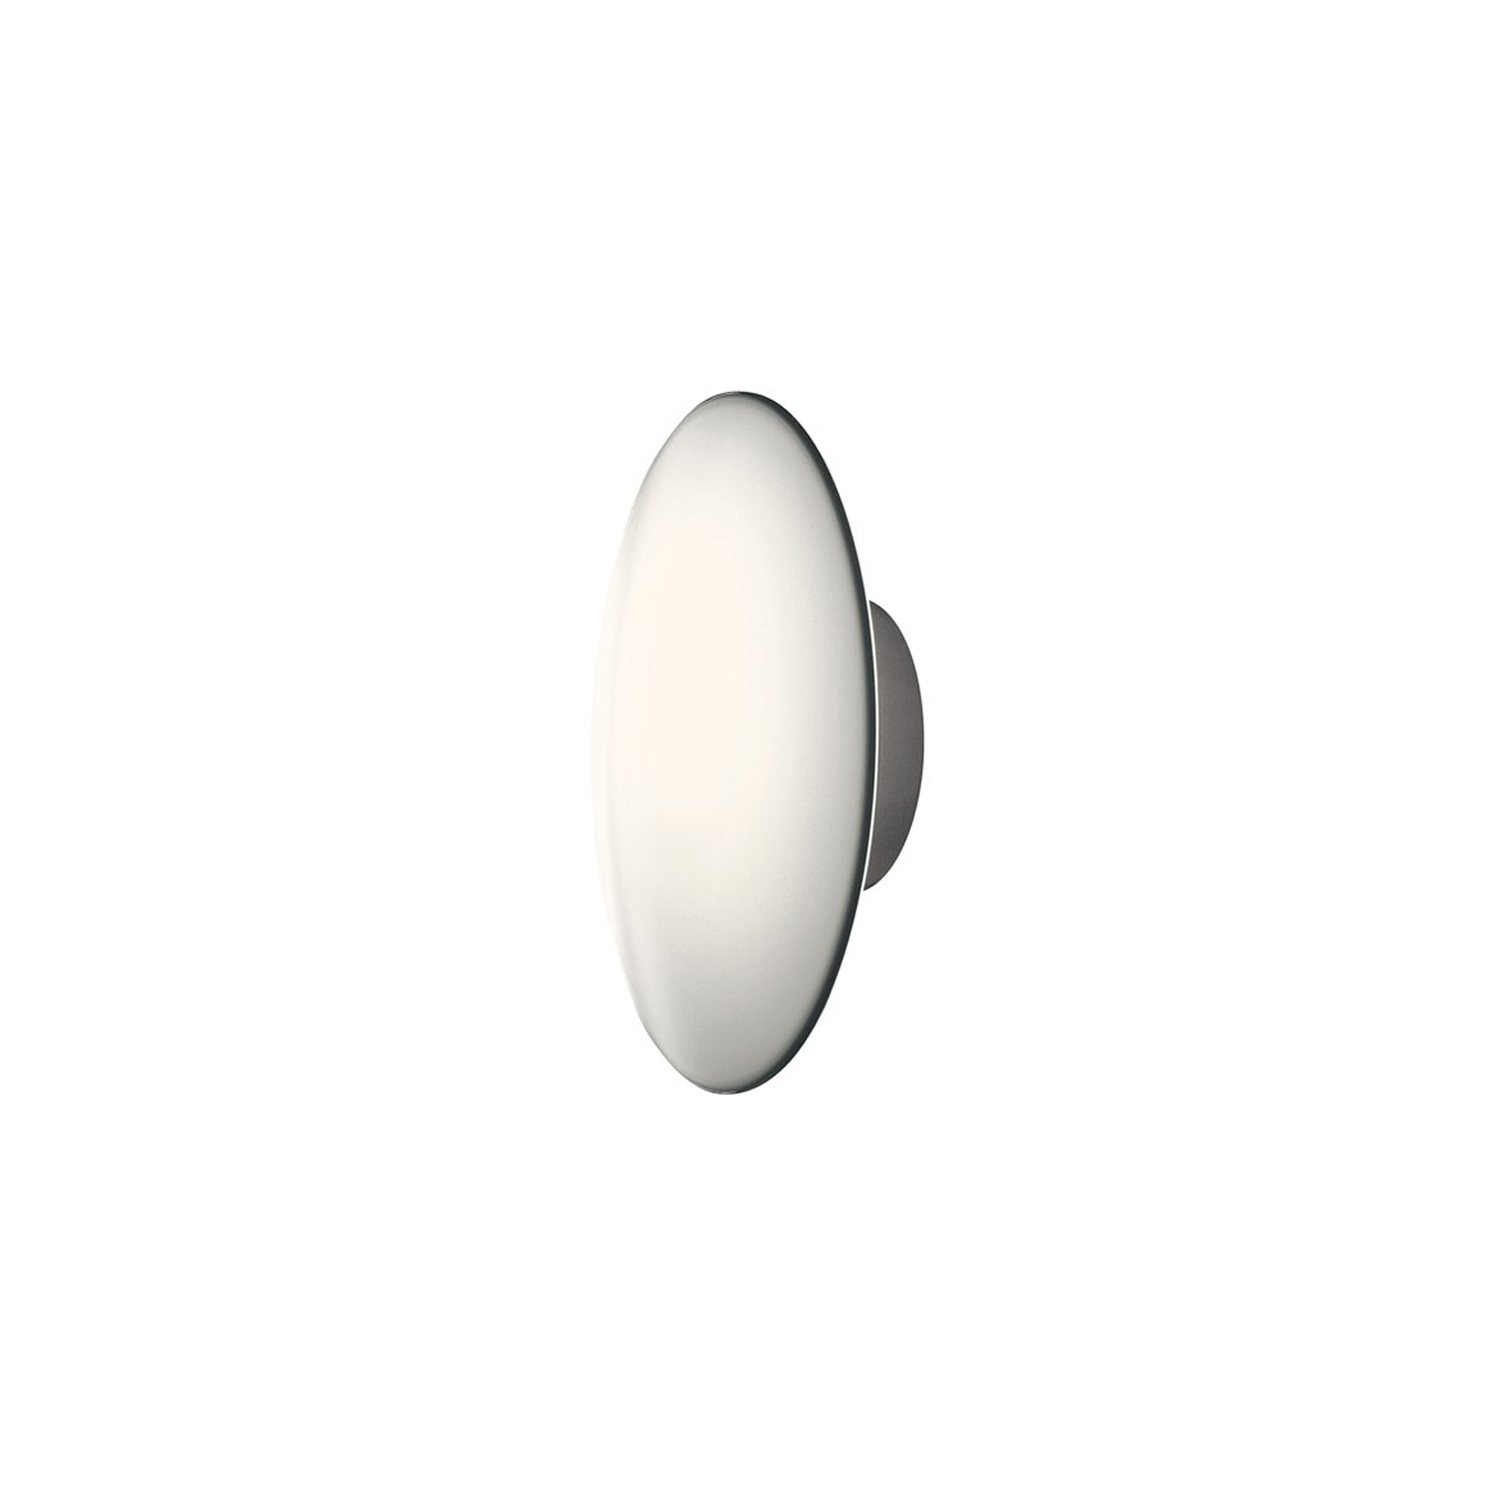 AJ Eklipta Wall Light - The fixture emits soft comfortable light. The glass is designed to provide a uniformly lit surface. The three-layer mouth-blown opal glass shade has a transparent edge, providing a decorative halo of light around the fixture. | Matter of Stuff